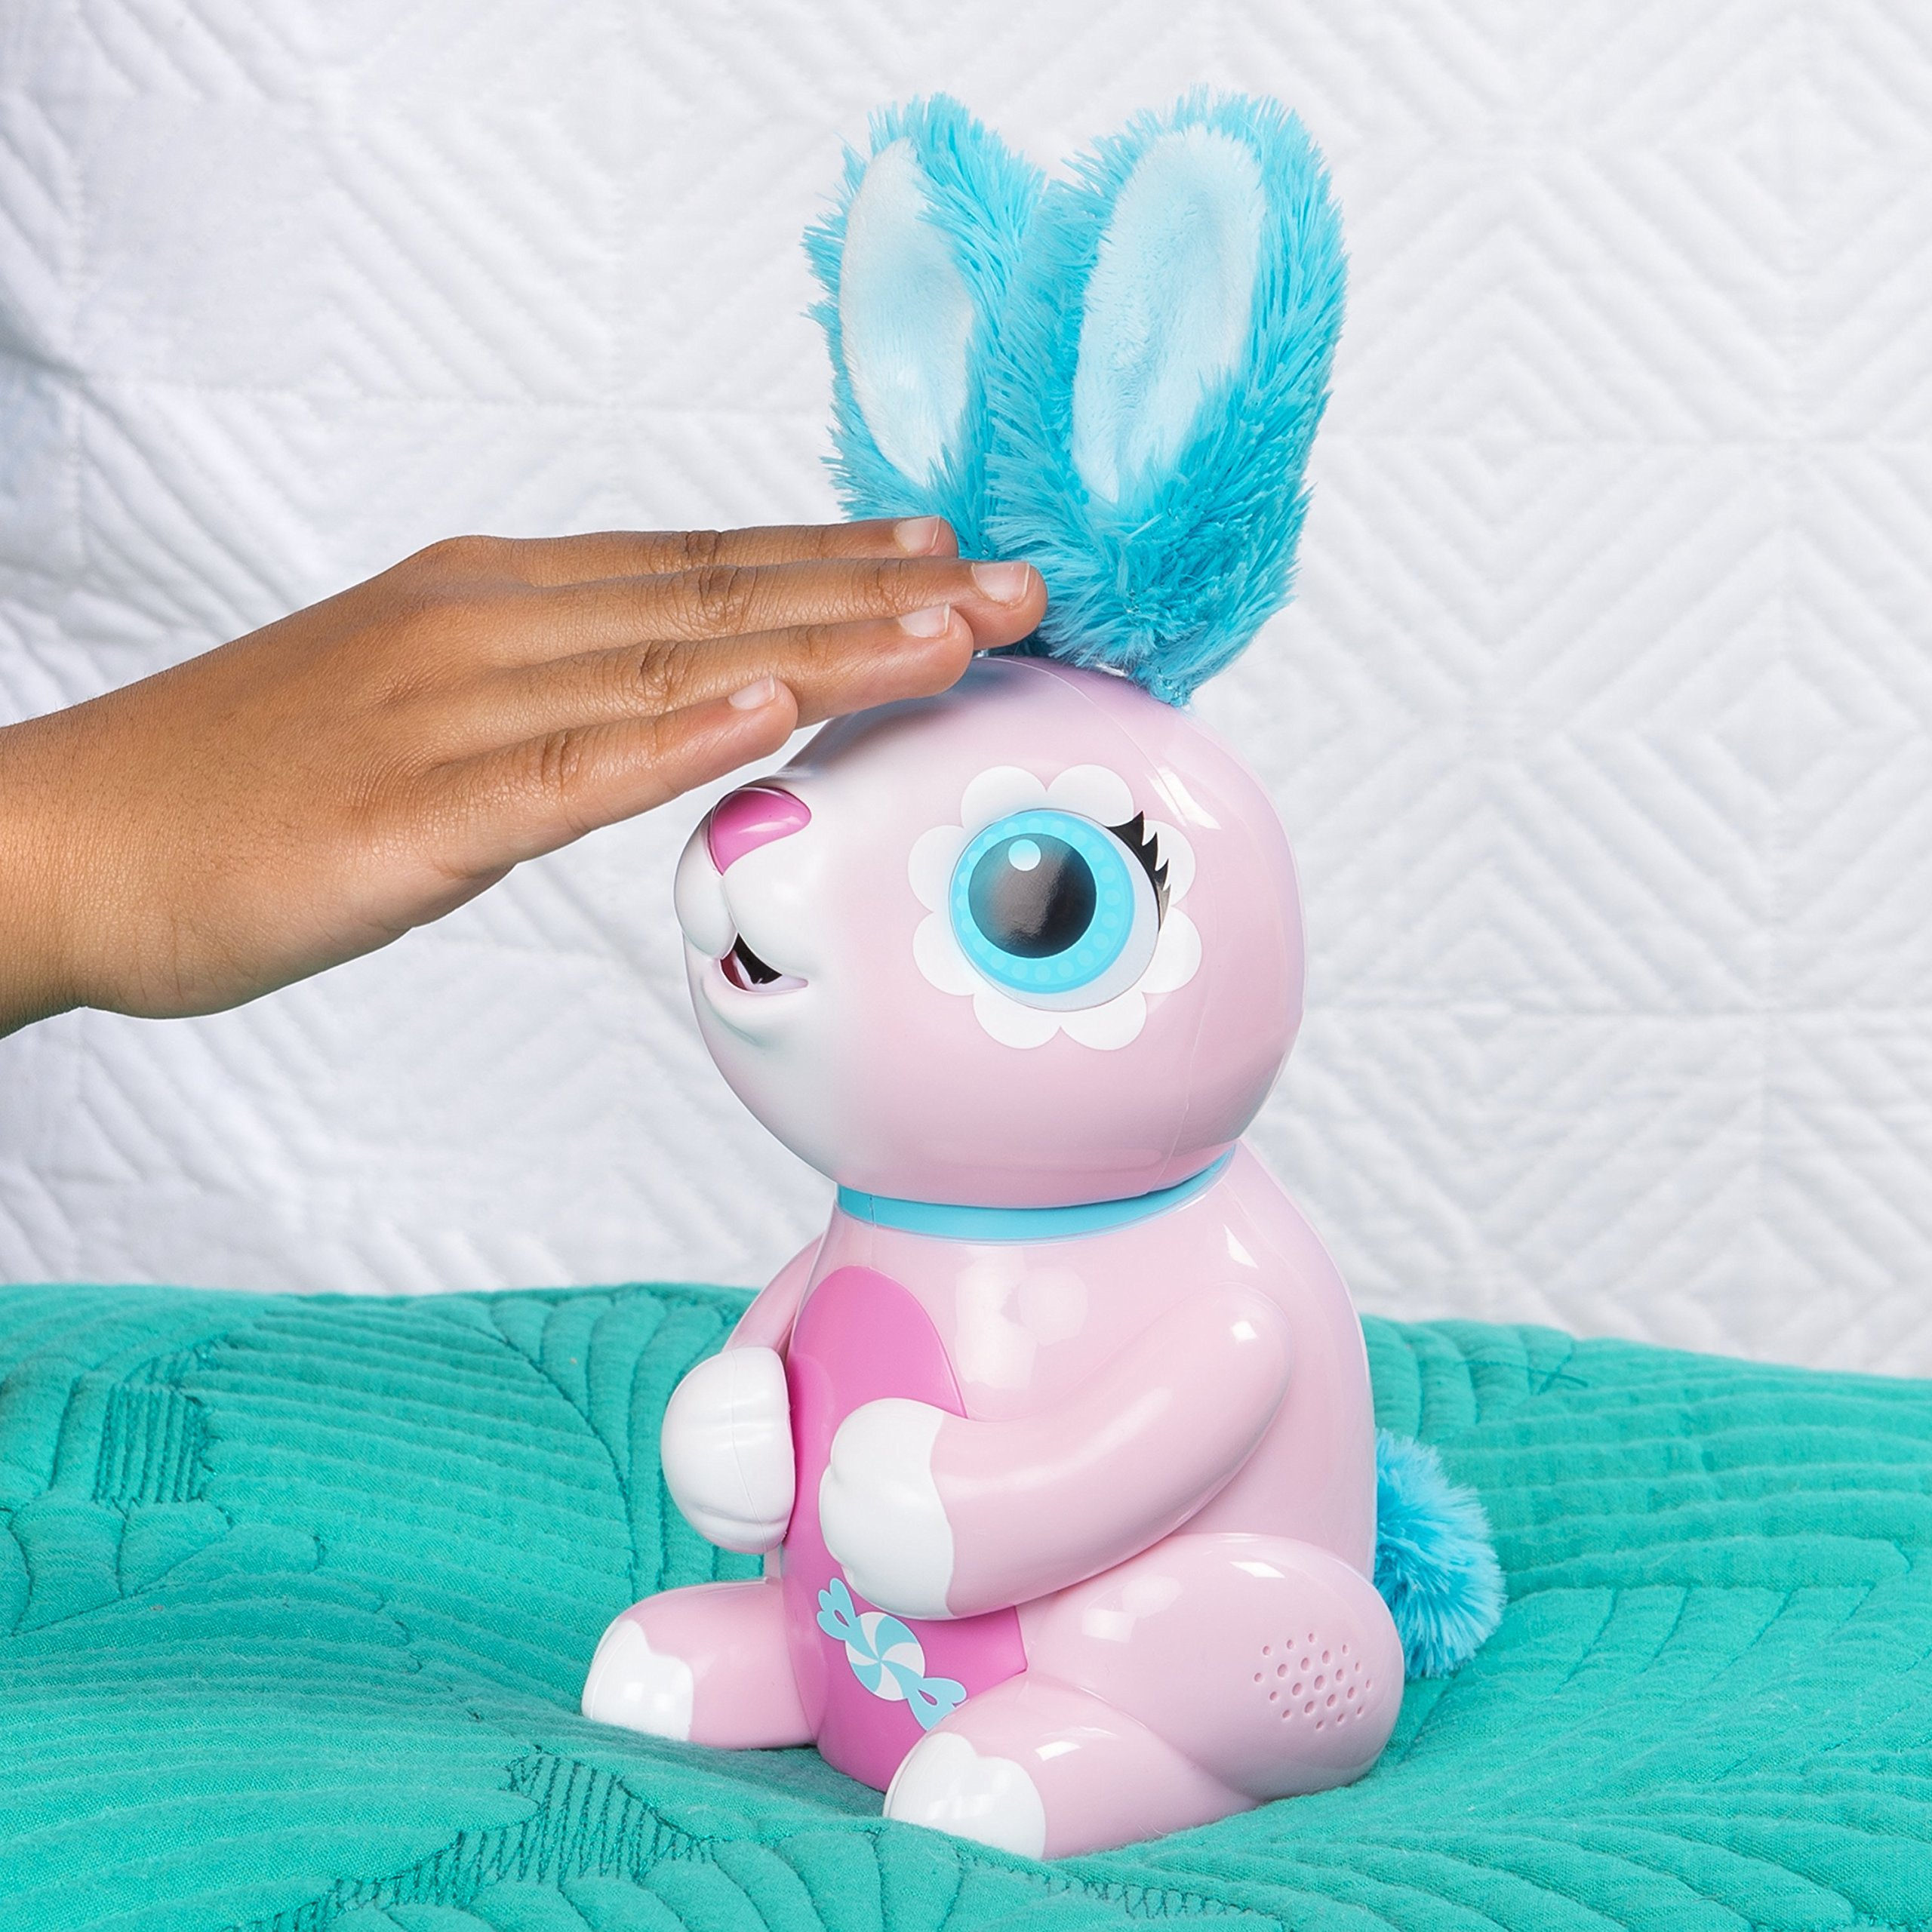 Zoomer Hungry Bunnies Shreddy, Interactive Robotic Rabbit That Eats, Ages 5 & Up by Zoomer (Image #4)